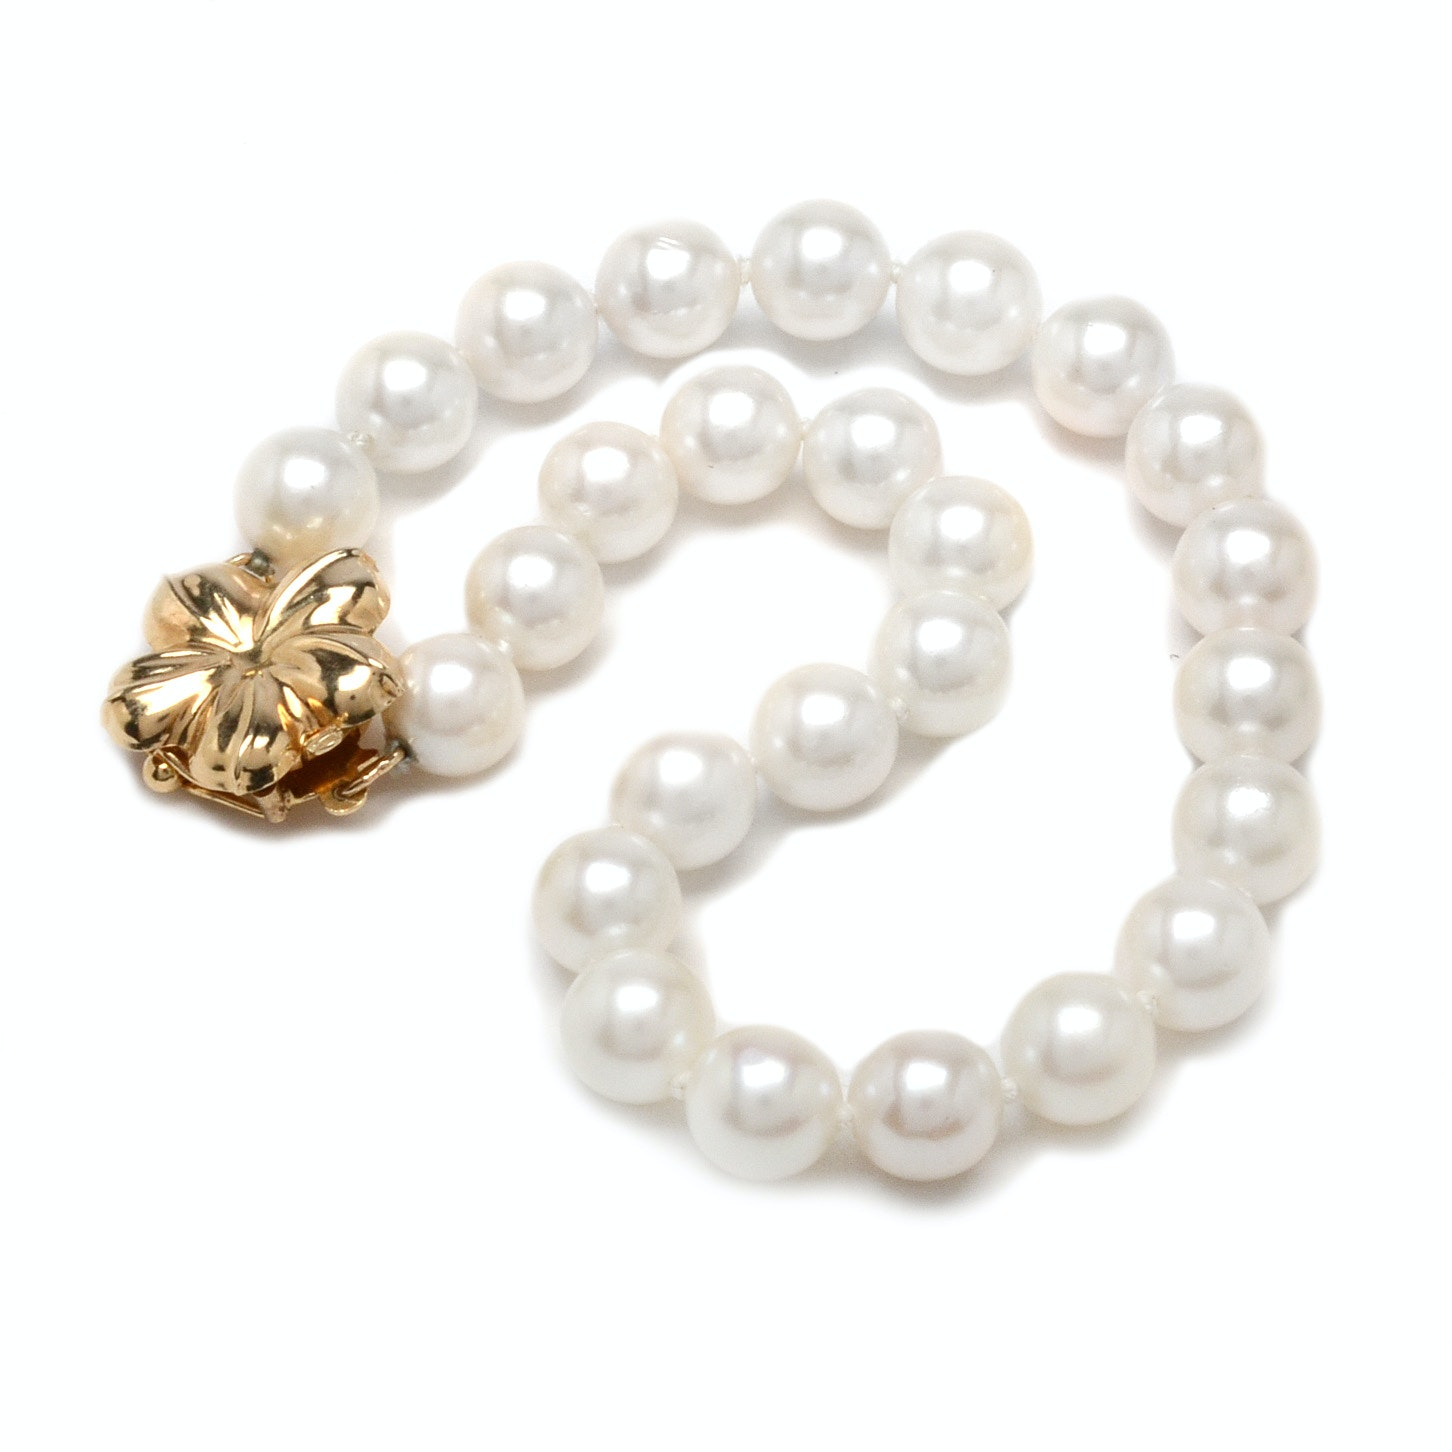 14K Yellow Gold and Cultured Pearl Bracelet